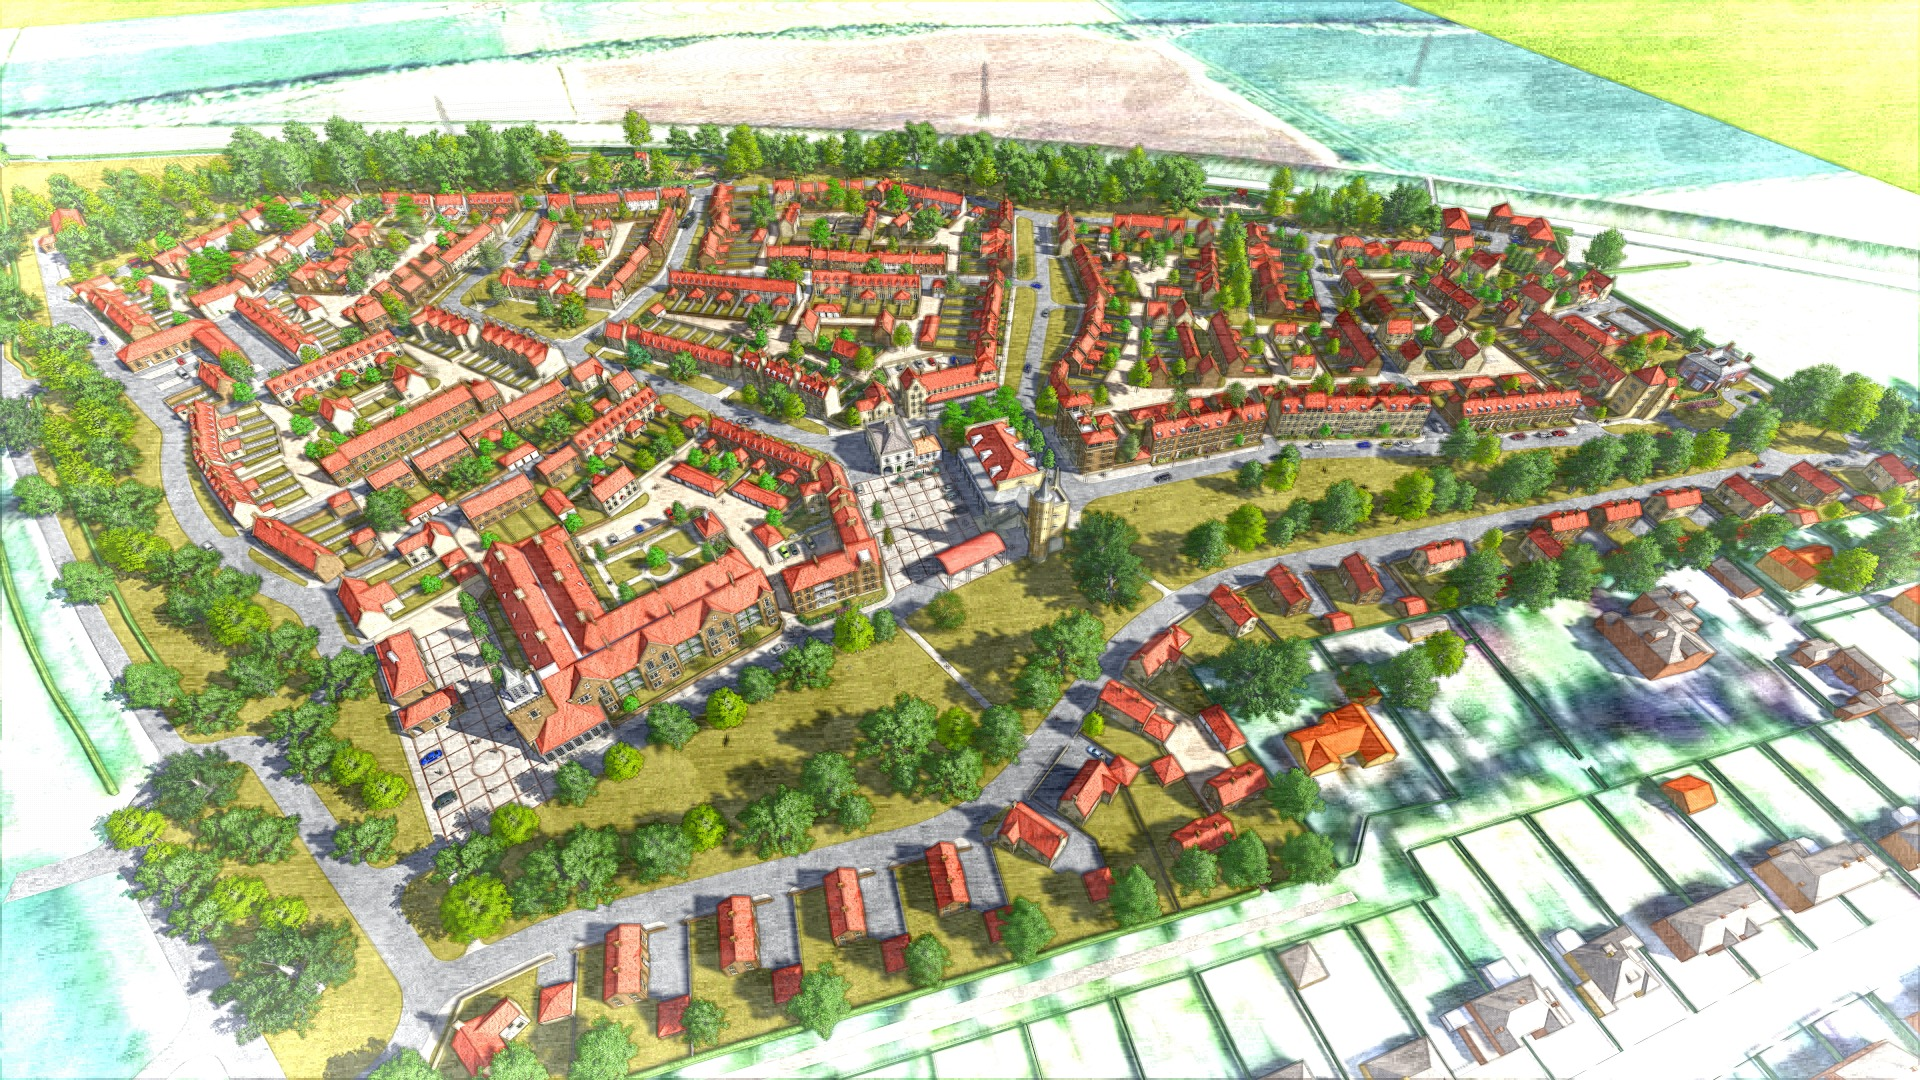 ESTATE PLAN: An artist's impression of the High Malton development